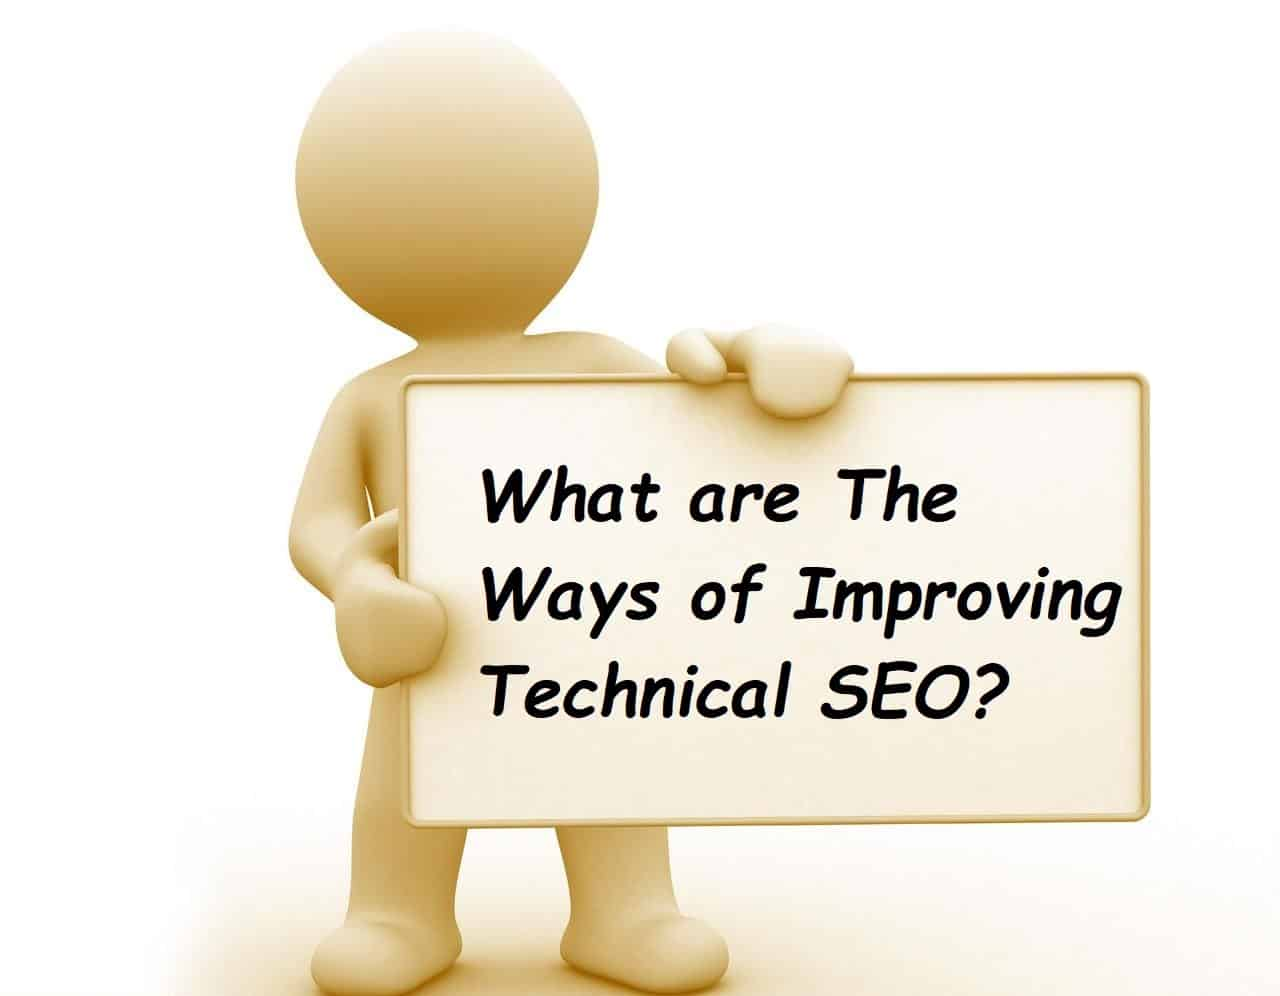 Ways of Improving Technical SEO